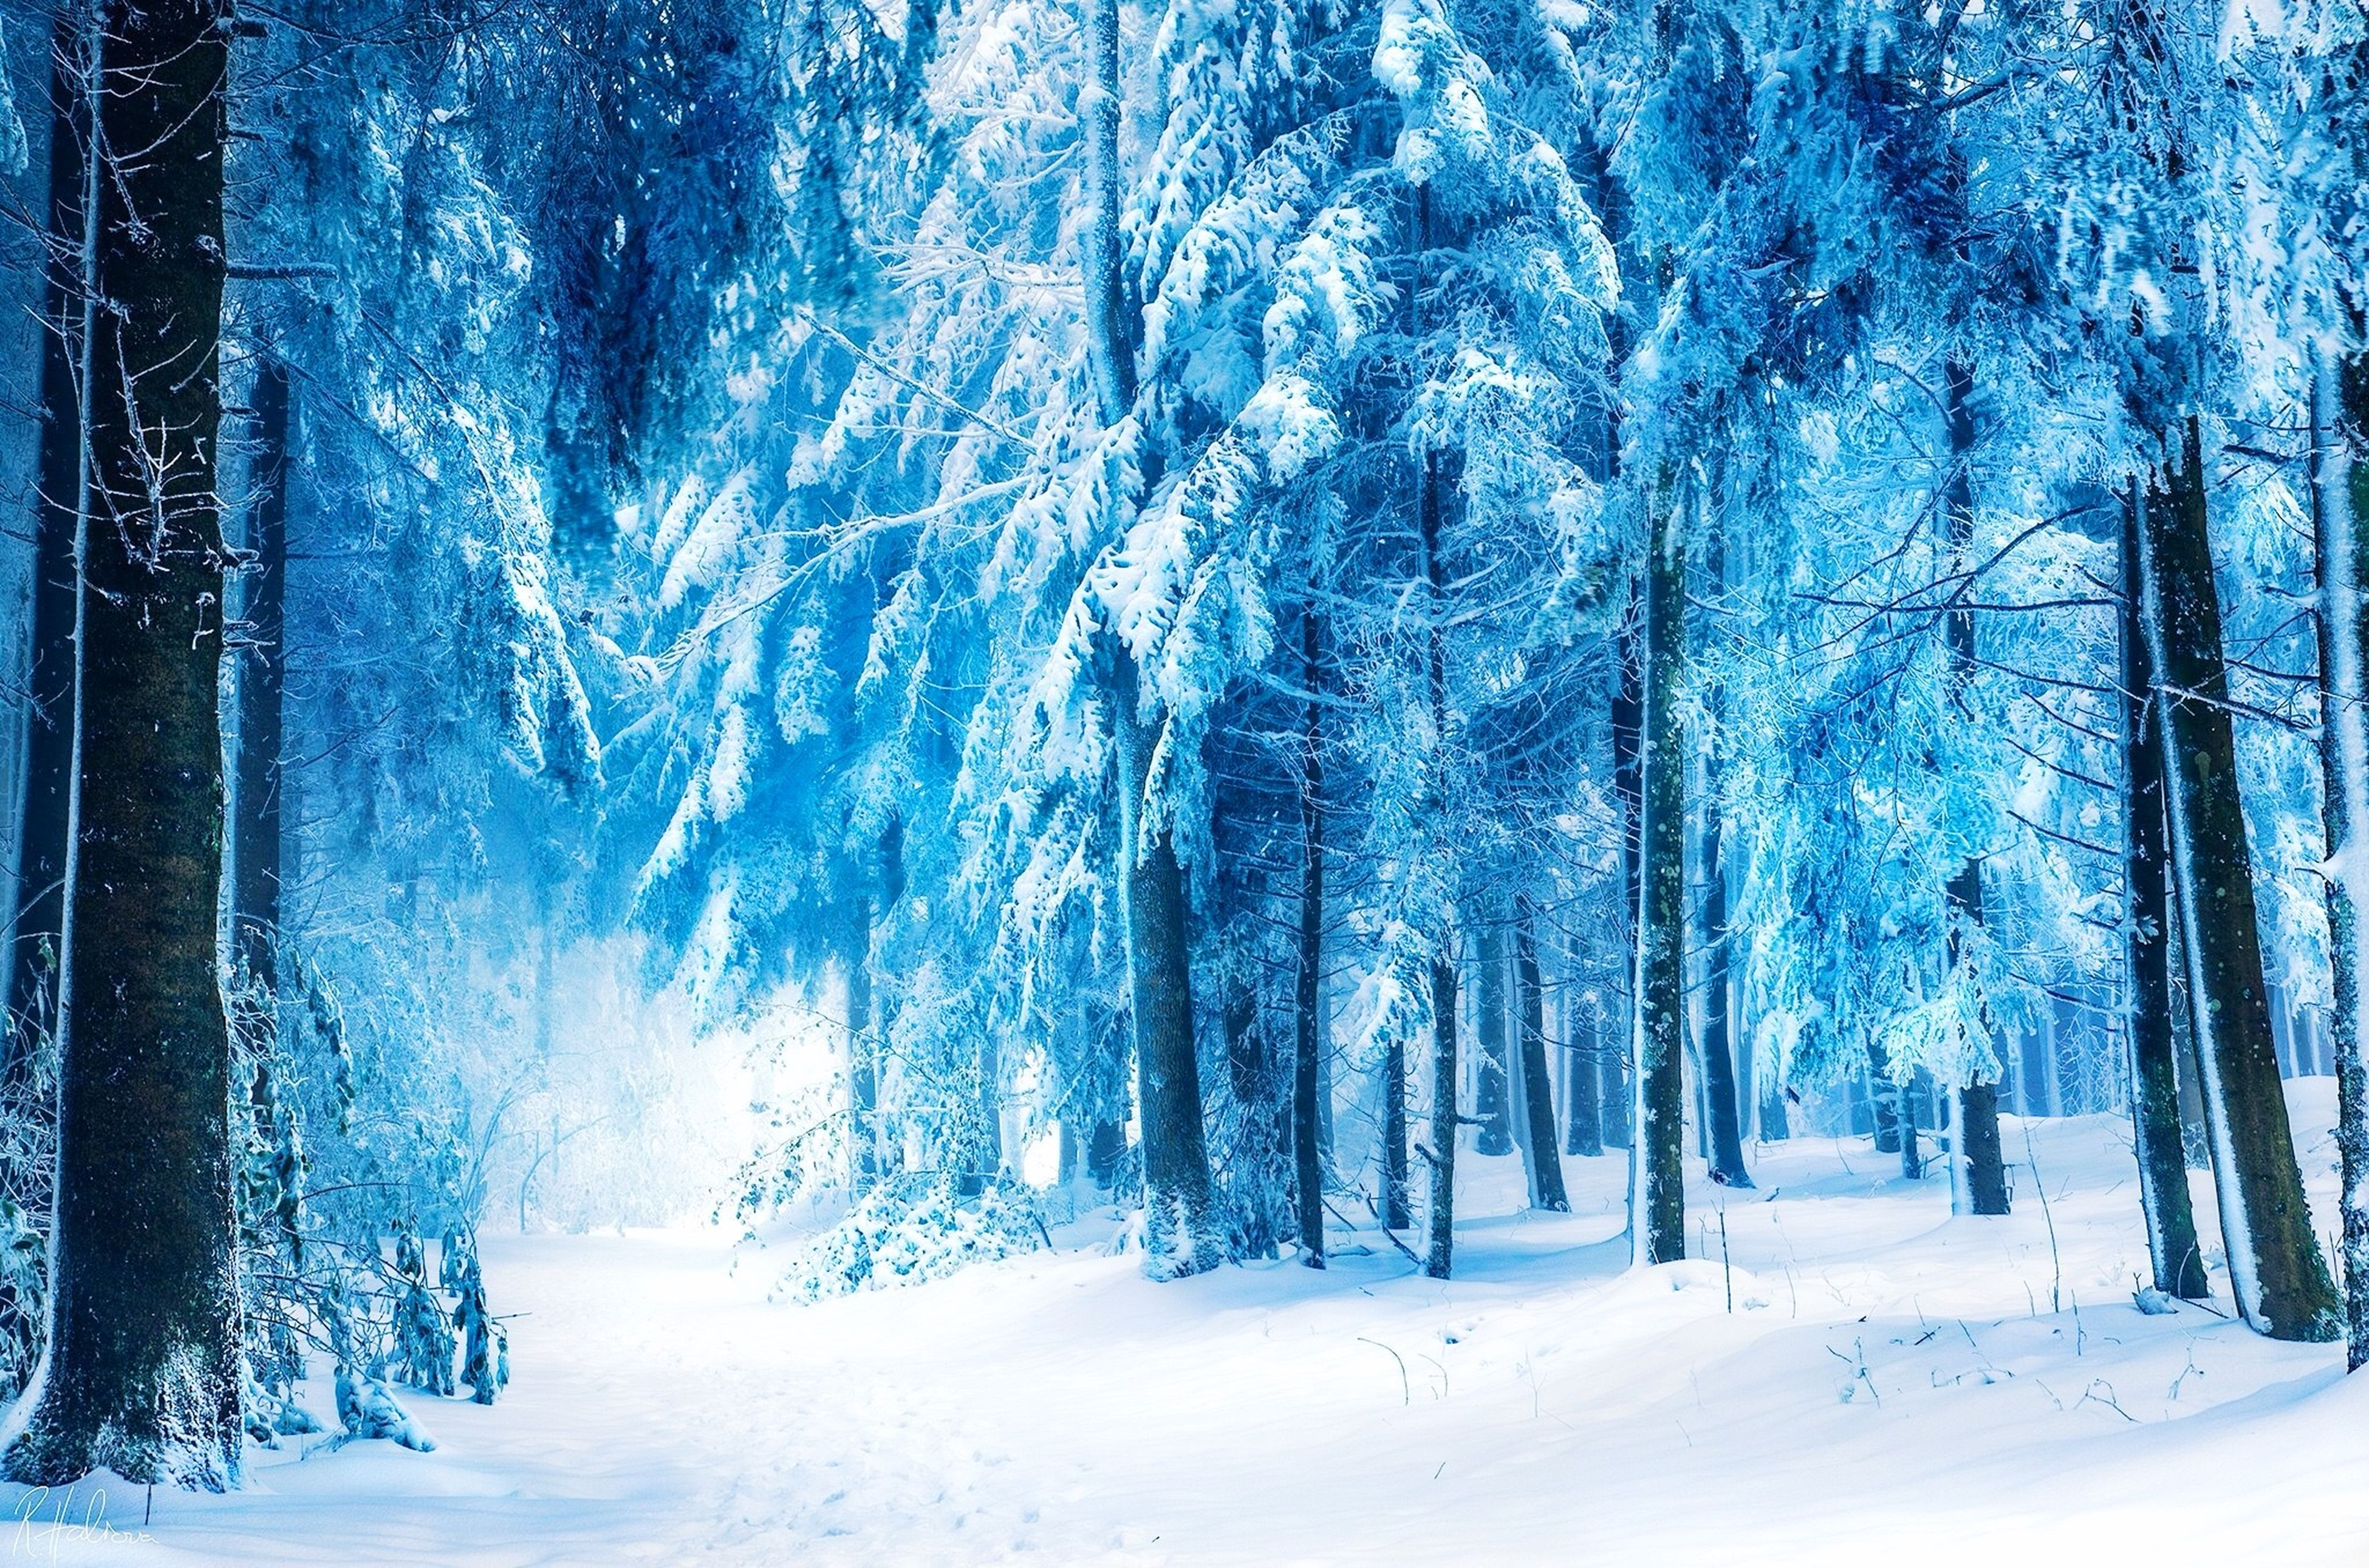 snow, winter, cold temperature, season, tree, weather, covering, tranquility, tranquil scene, beauty in nature, nature, scenics, landscape, frozen, white color, covered, tree trunk, forest, bare tree, woodland